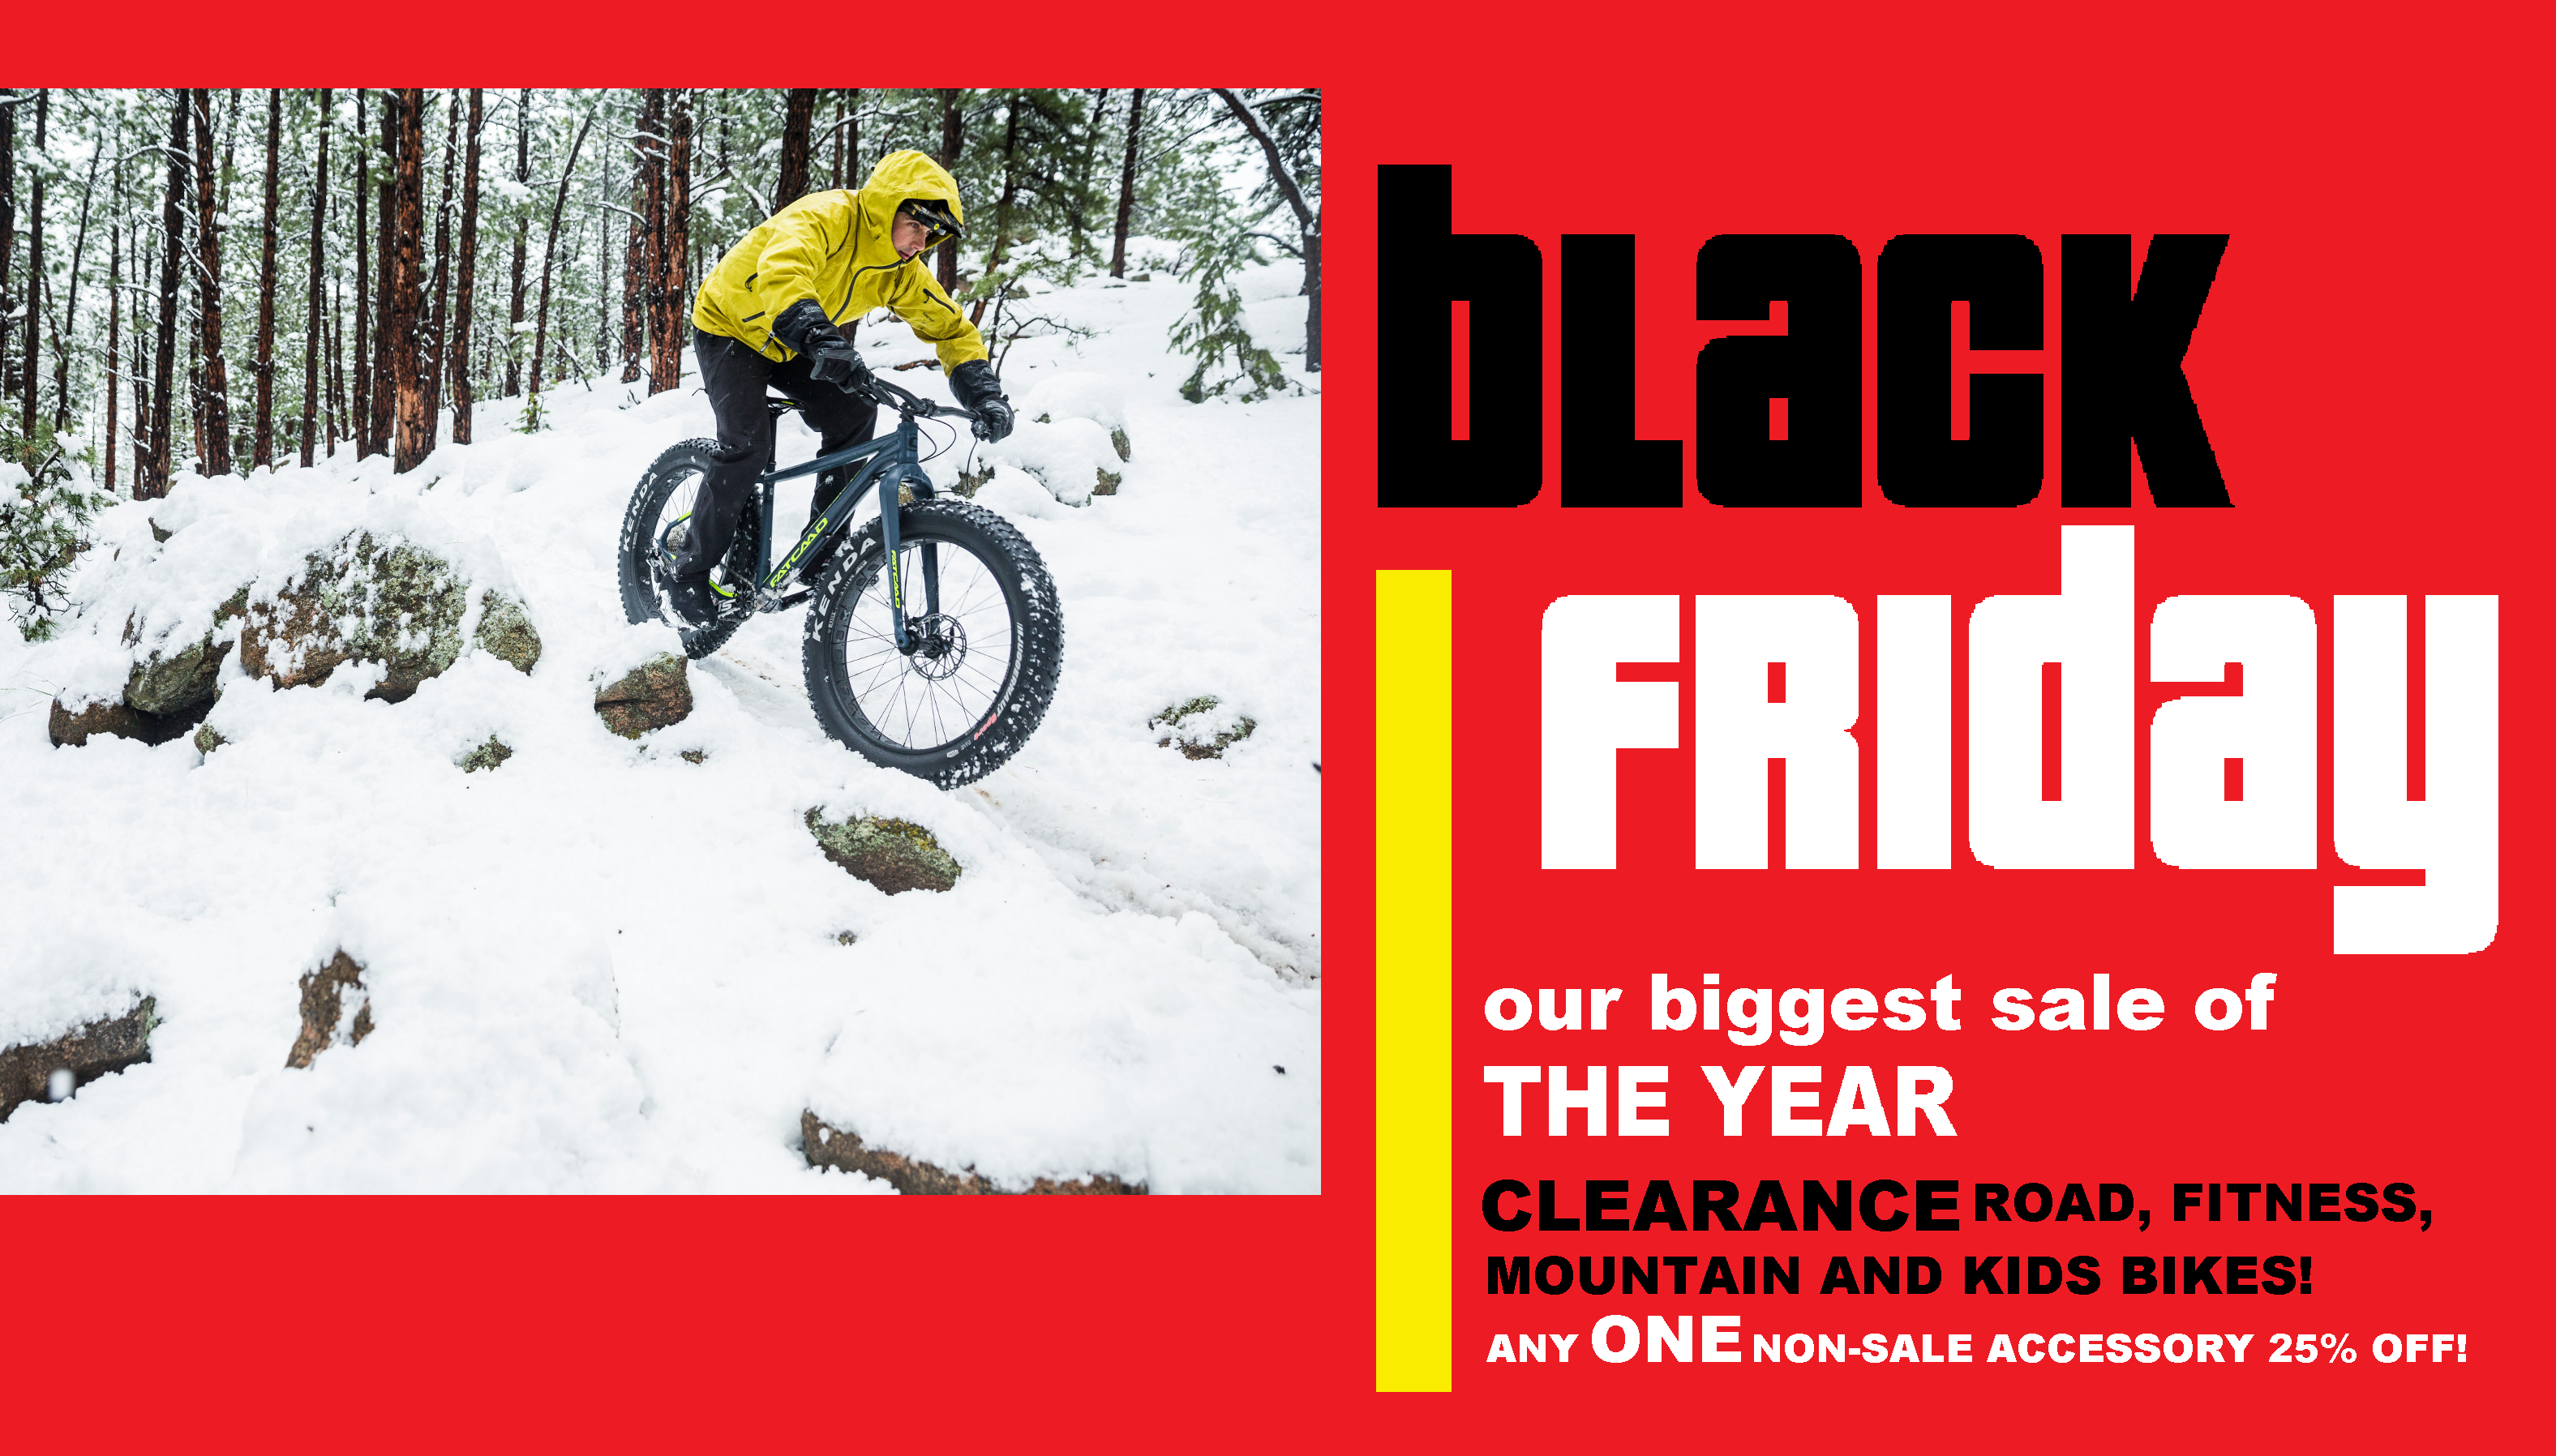 BLACK FRIDAY; OUR BIGGEST SALE OF THE YEAR! CLEARANCE ROAD, FITNESS, KIDS AND MOUNTAIN BIKES! ANY ONE NON-SALE ACCESSORY 25% PERCENT OFF